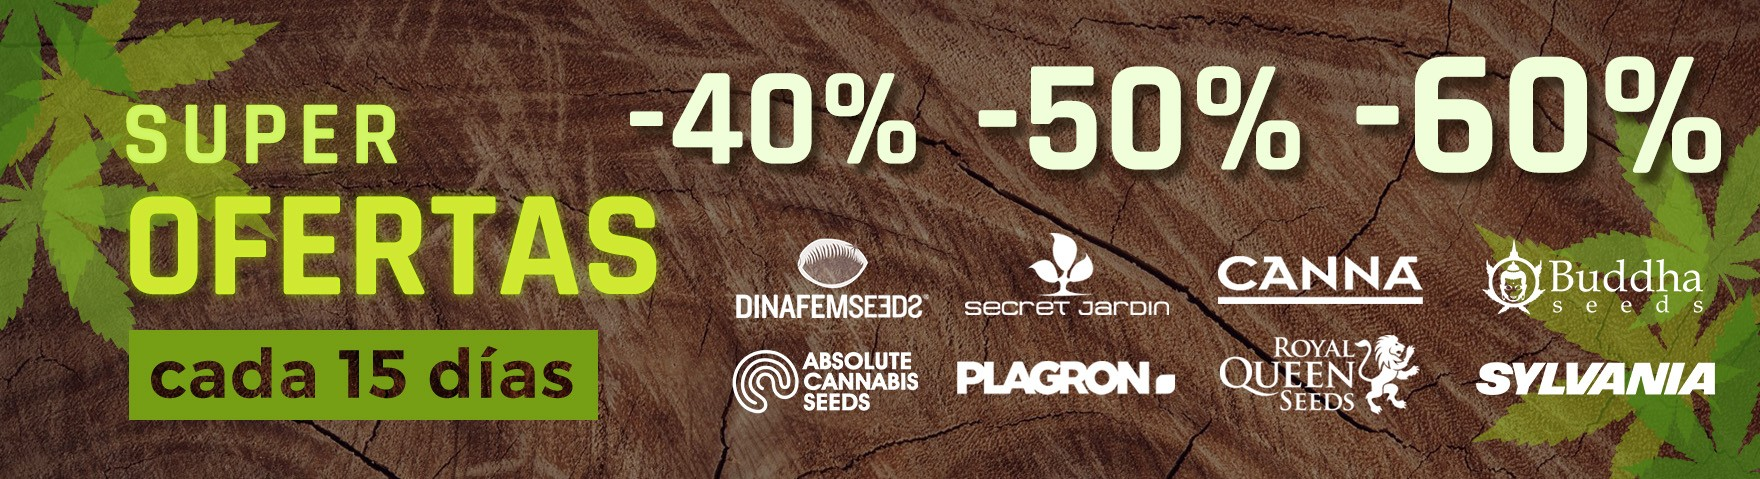 Super ofertas Grow Shop